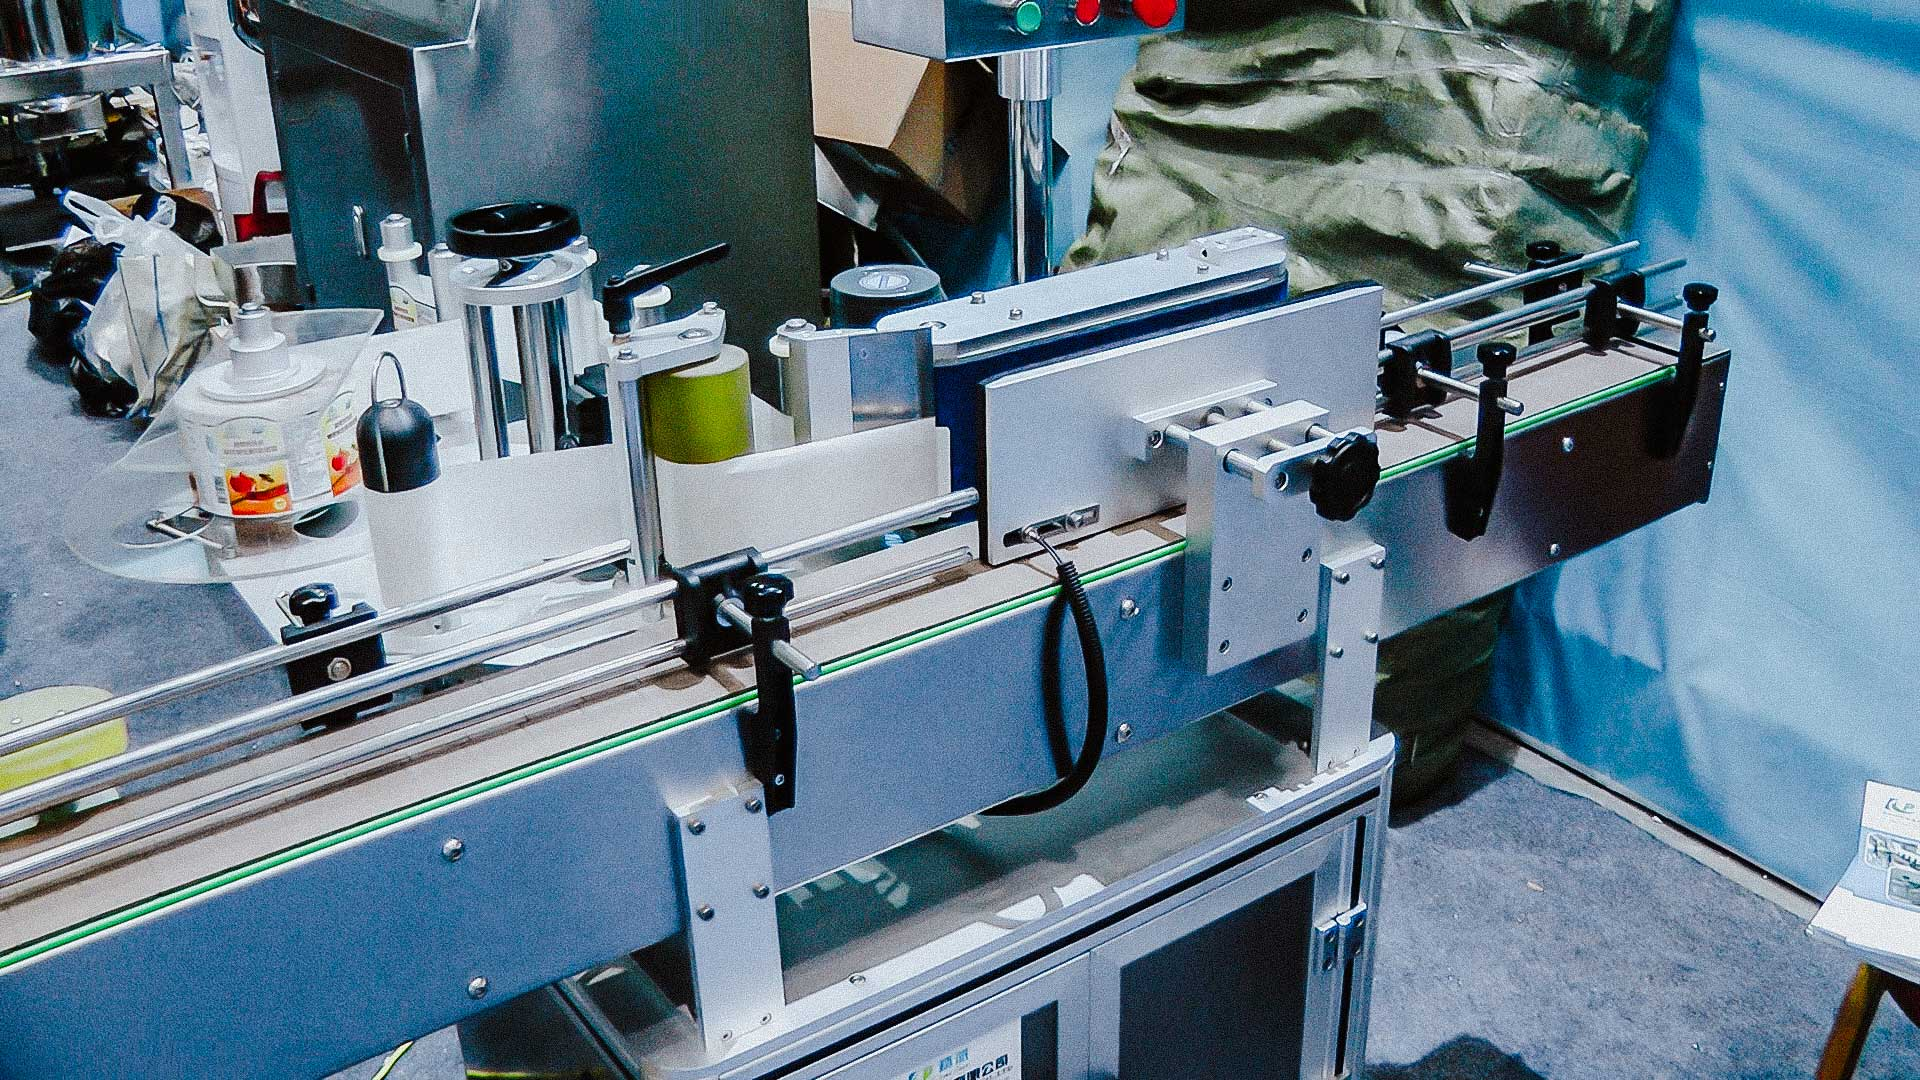 Automatic labeling machine for sticking self-adhesive labels on glass bottles